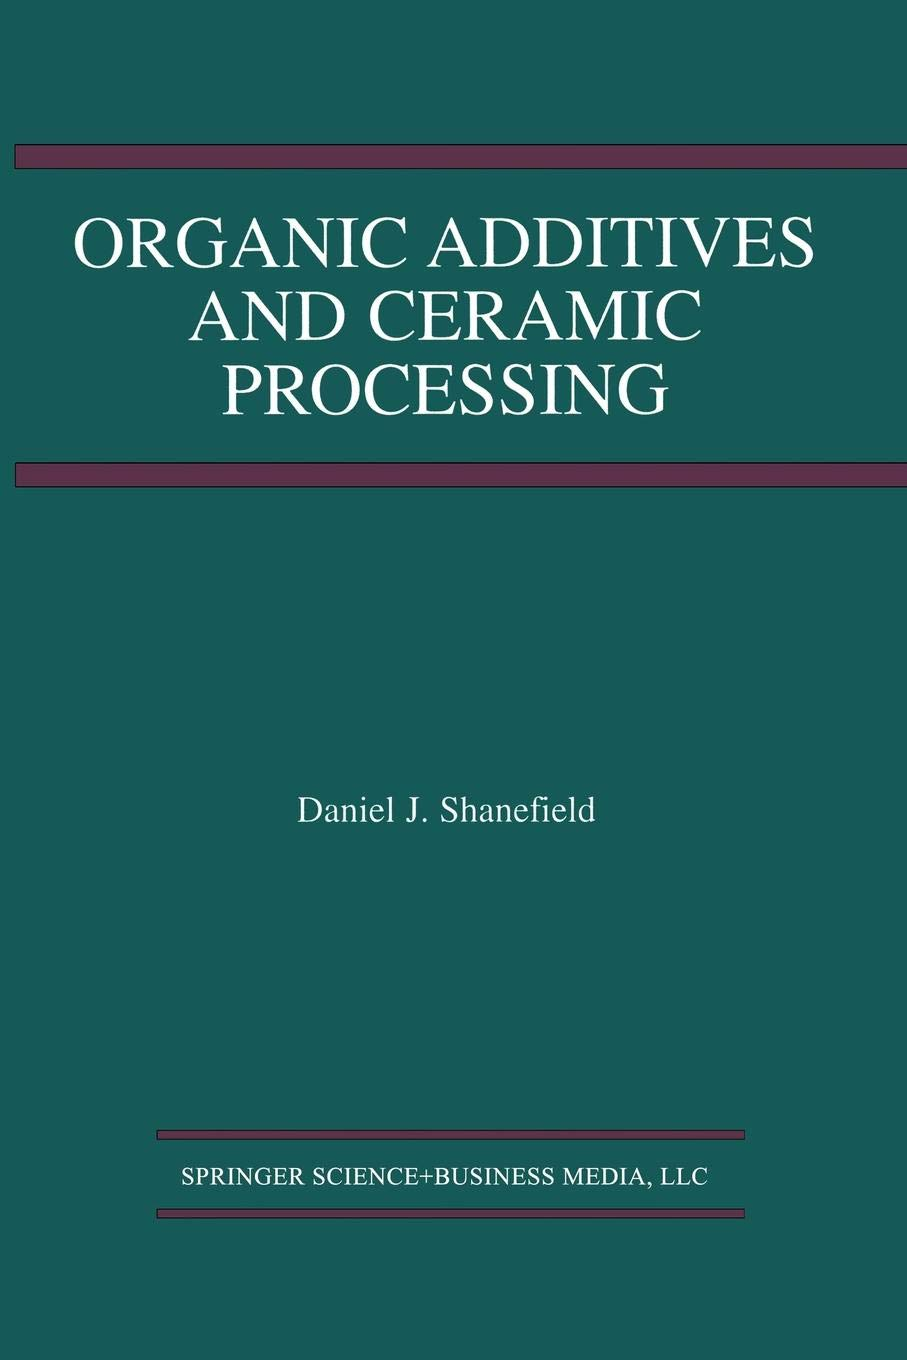 Organic Additives and Ceramic Processing